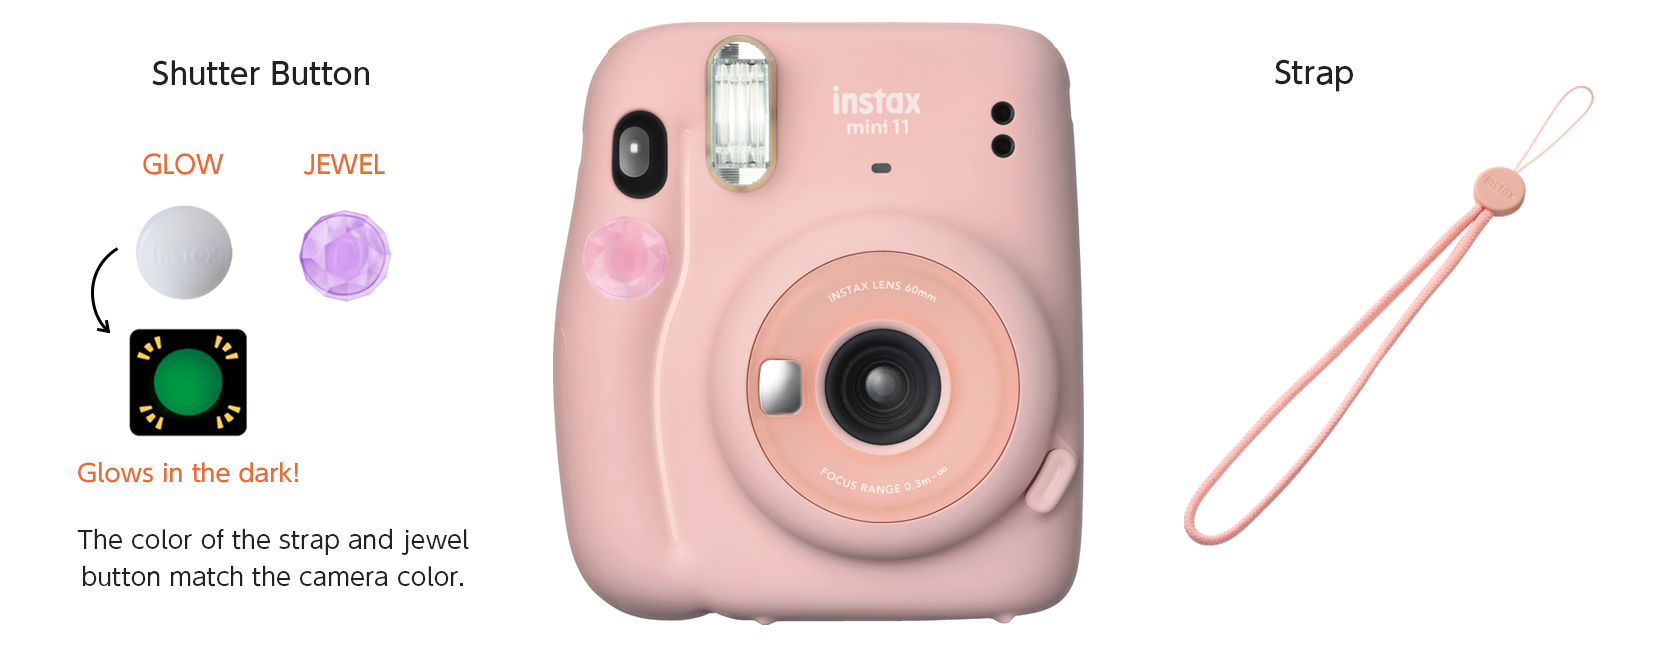 Image of pink Mini 11 with included two shutter button accessories and a strap